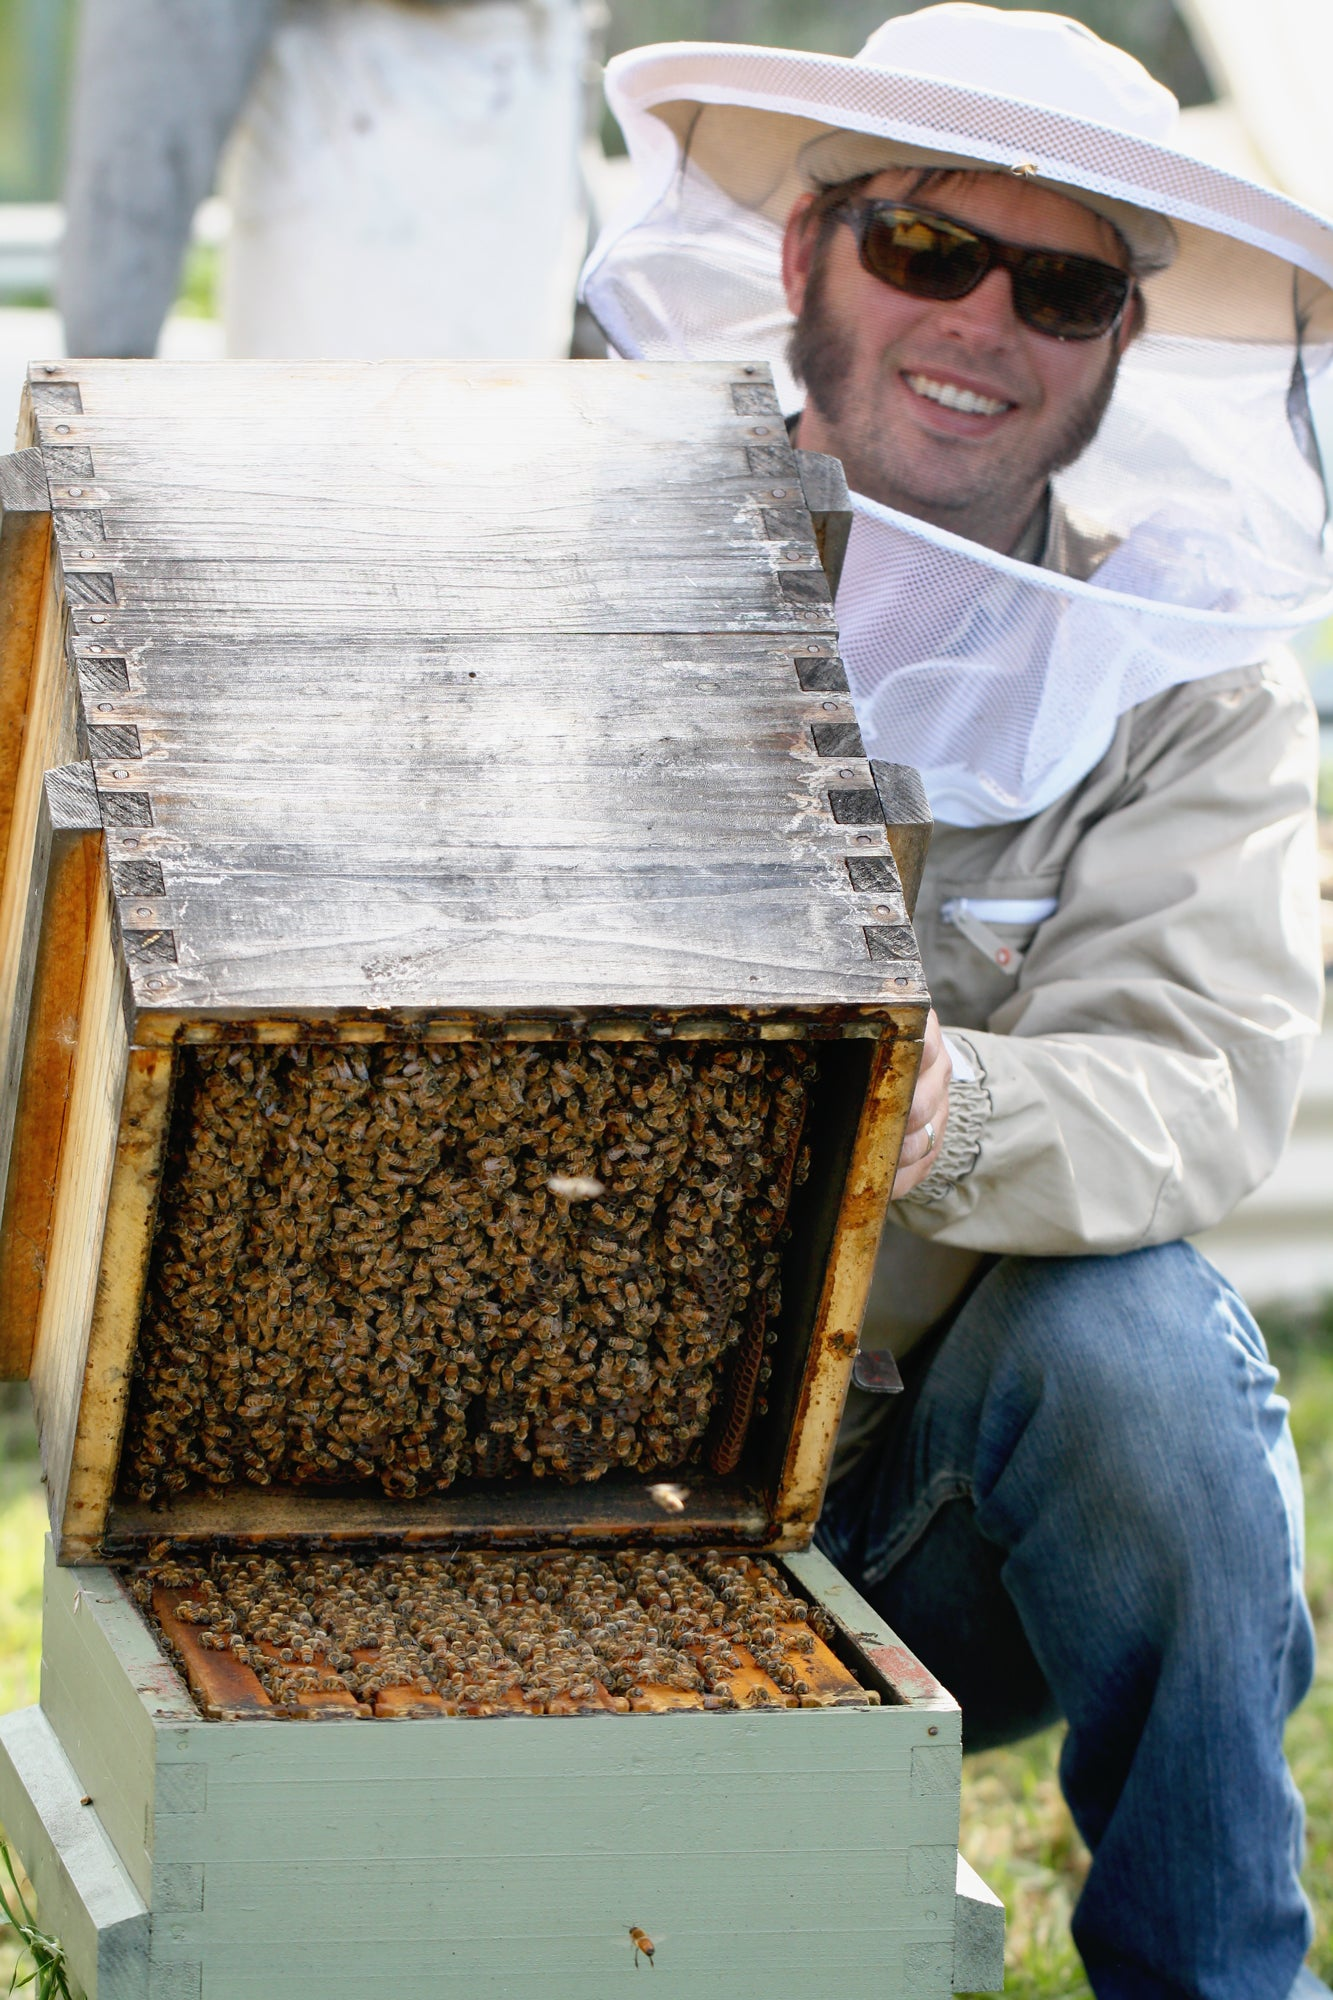 Malfroy's Gold Warré hive tilting method